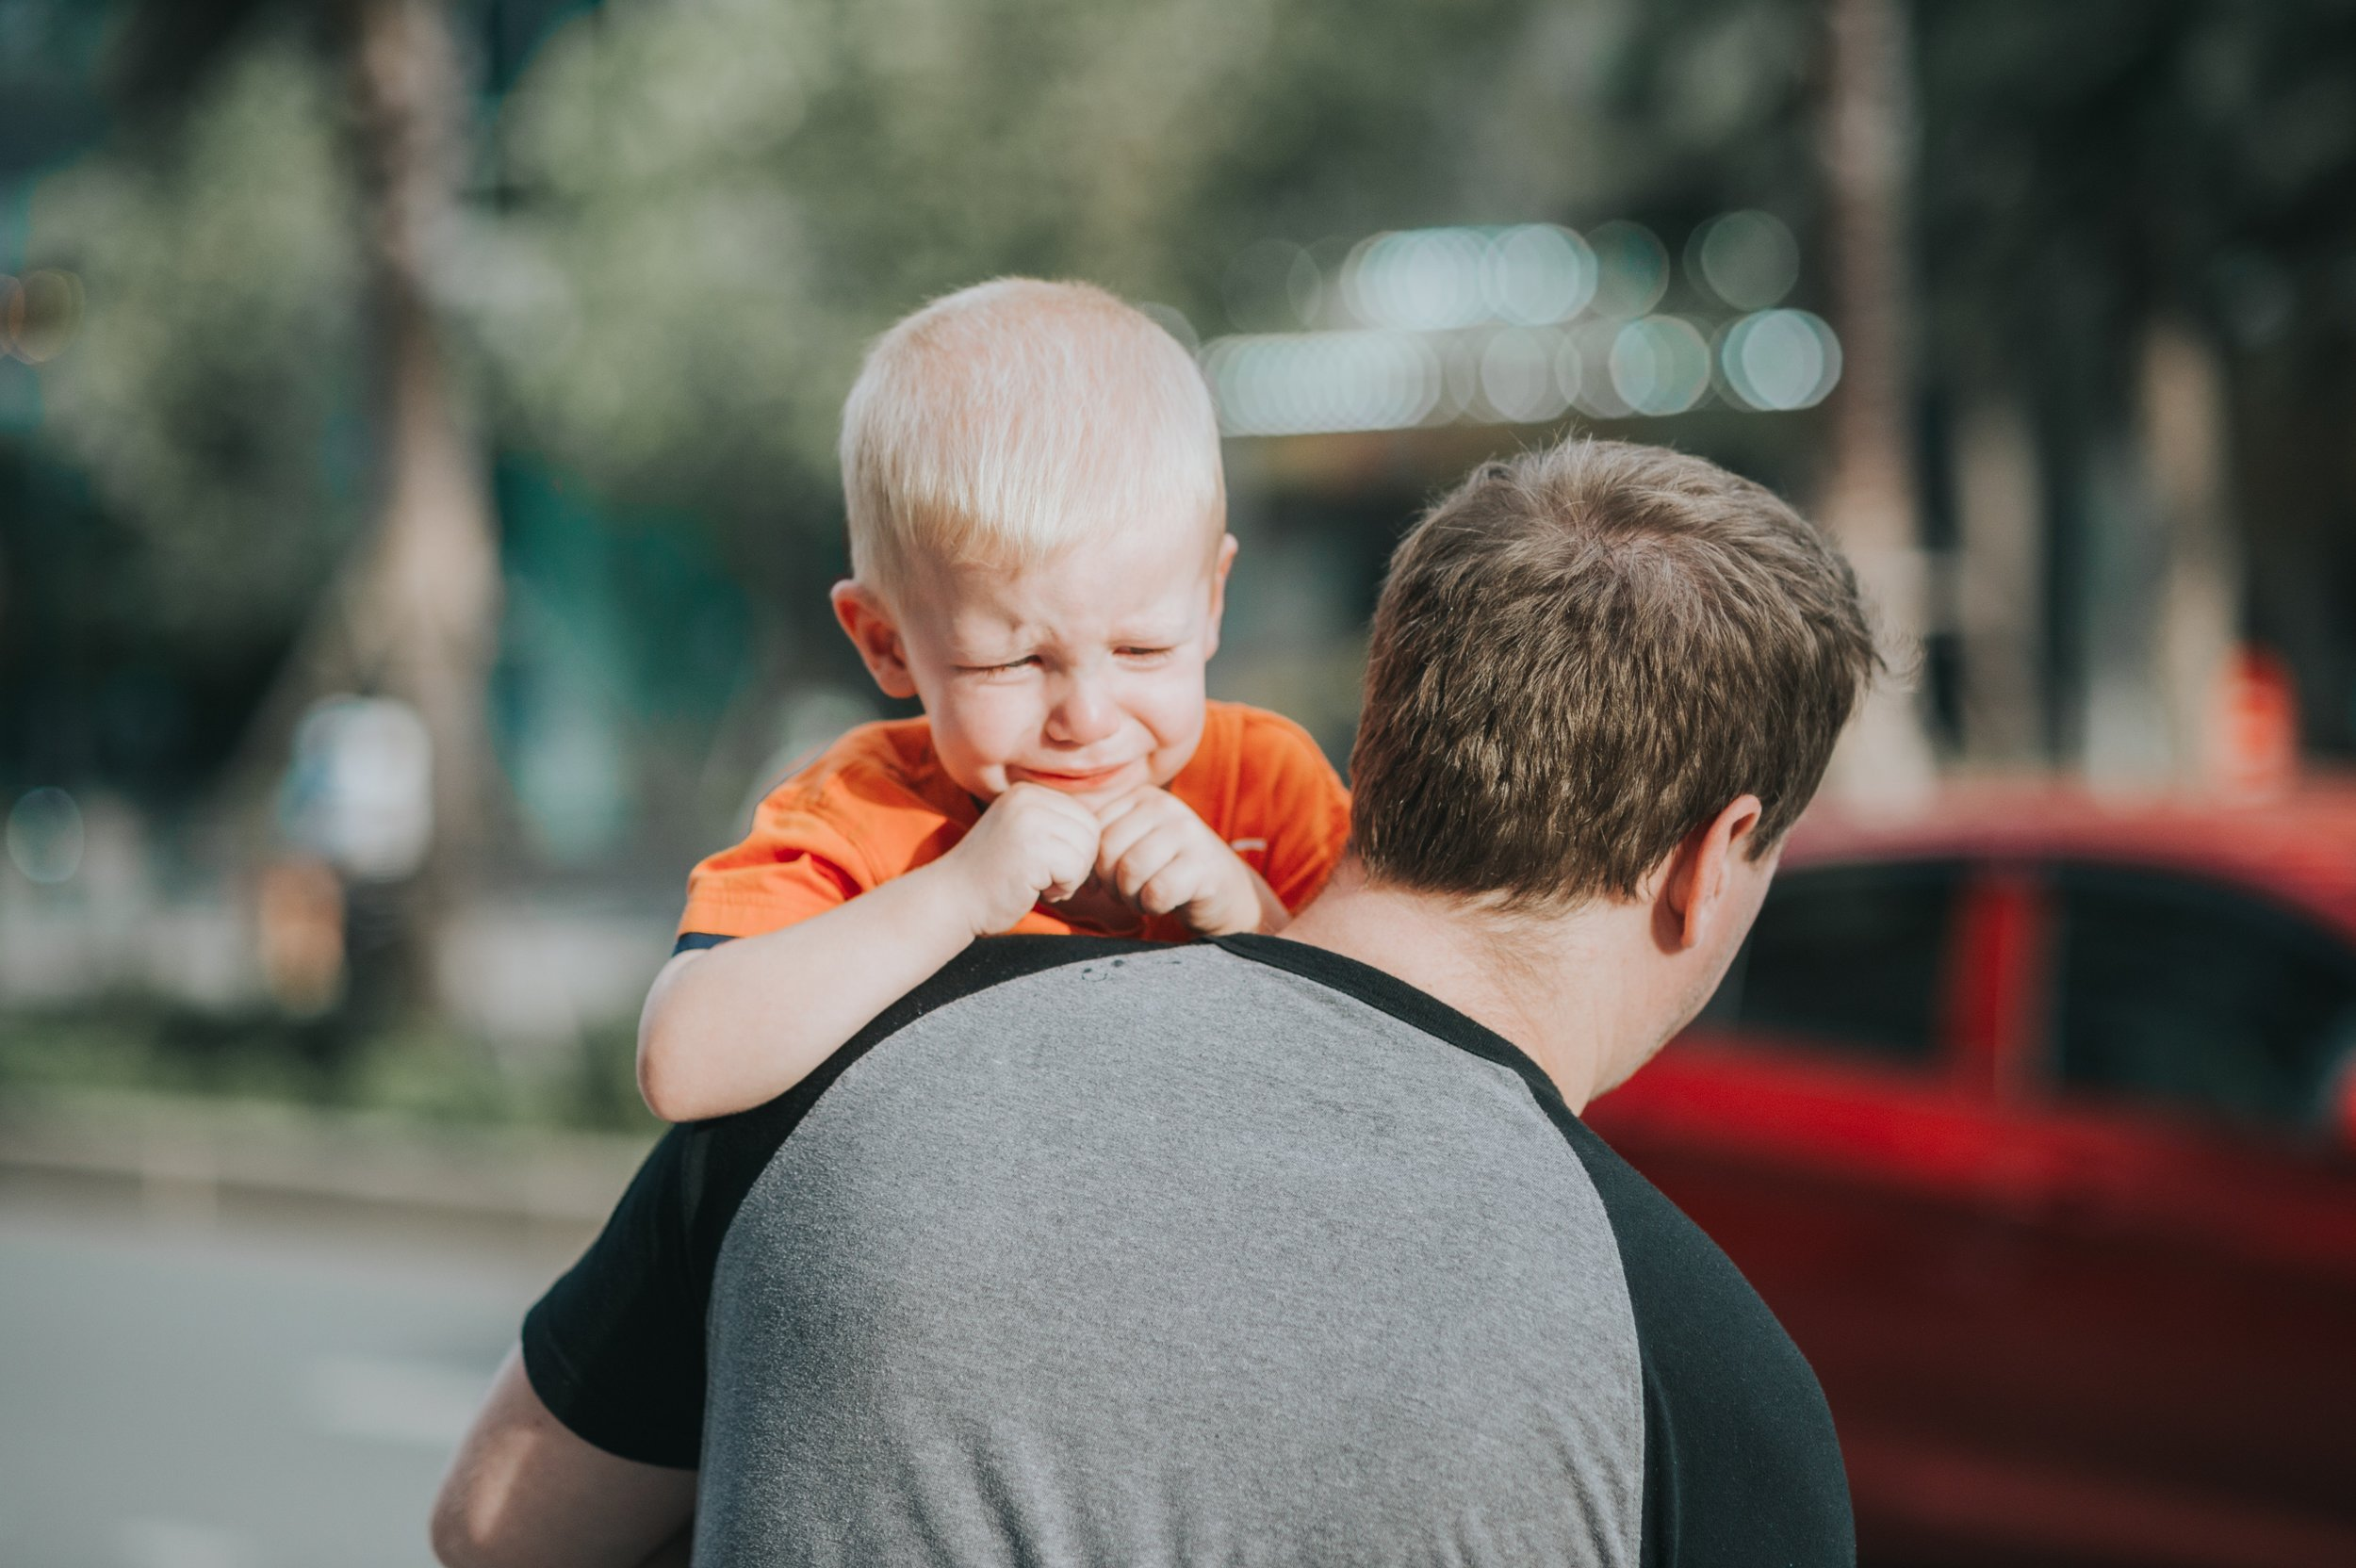 Dads can really be the target of unkind words from strangers when their child misbehaves.